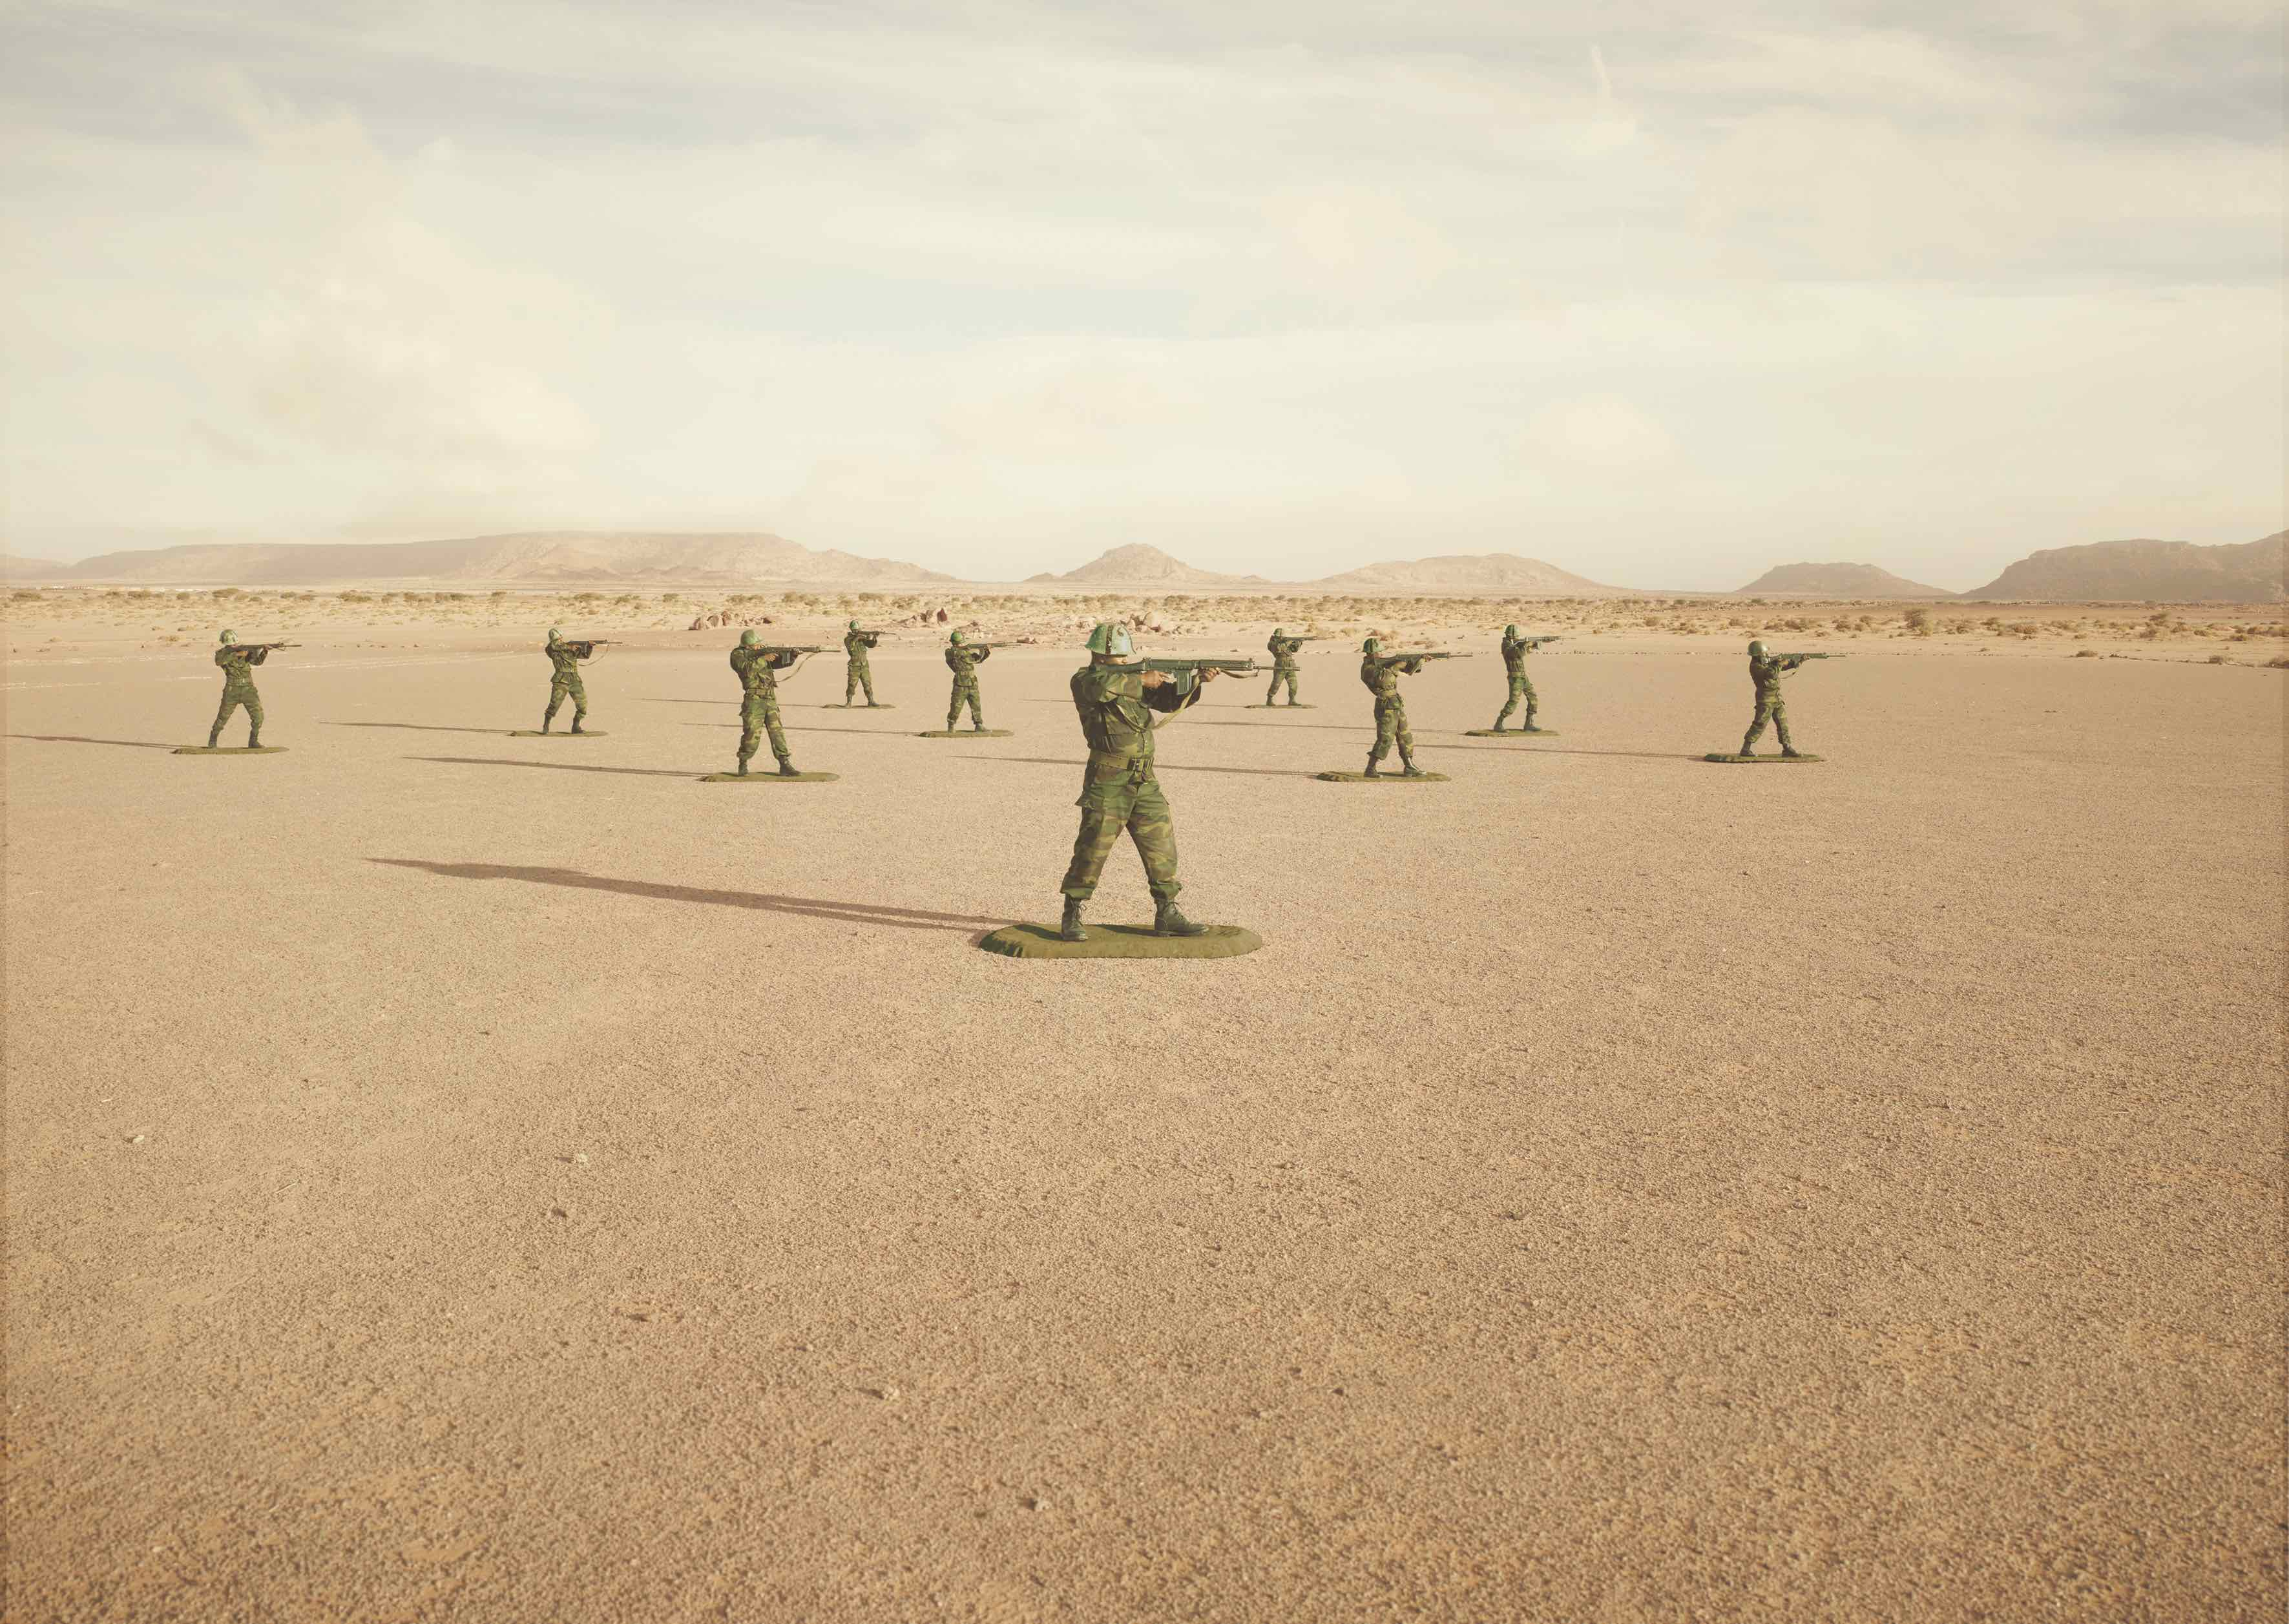 'Toy Soldiers' © Simon Brann Thorpe, from 'War Is Only Half The Story', The Aftermath Project & Dewi Lewis Publishing